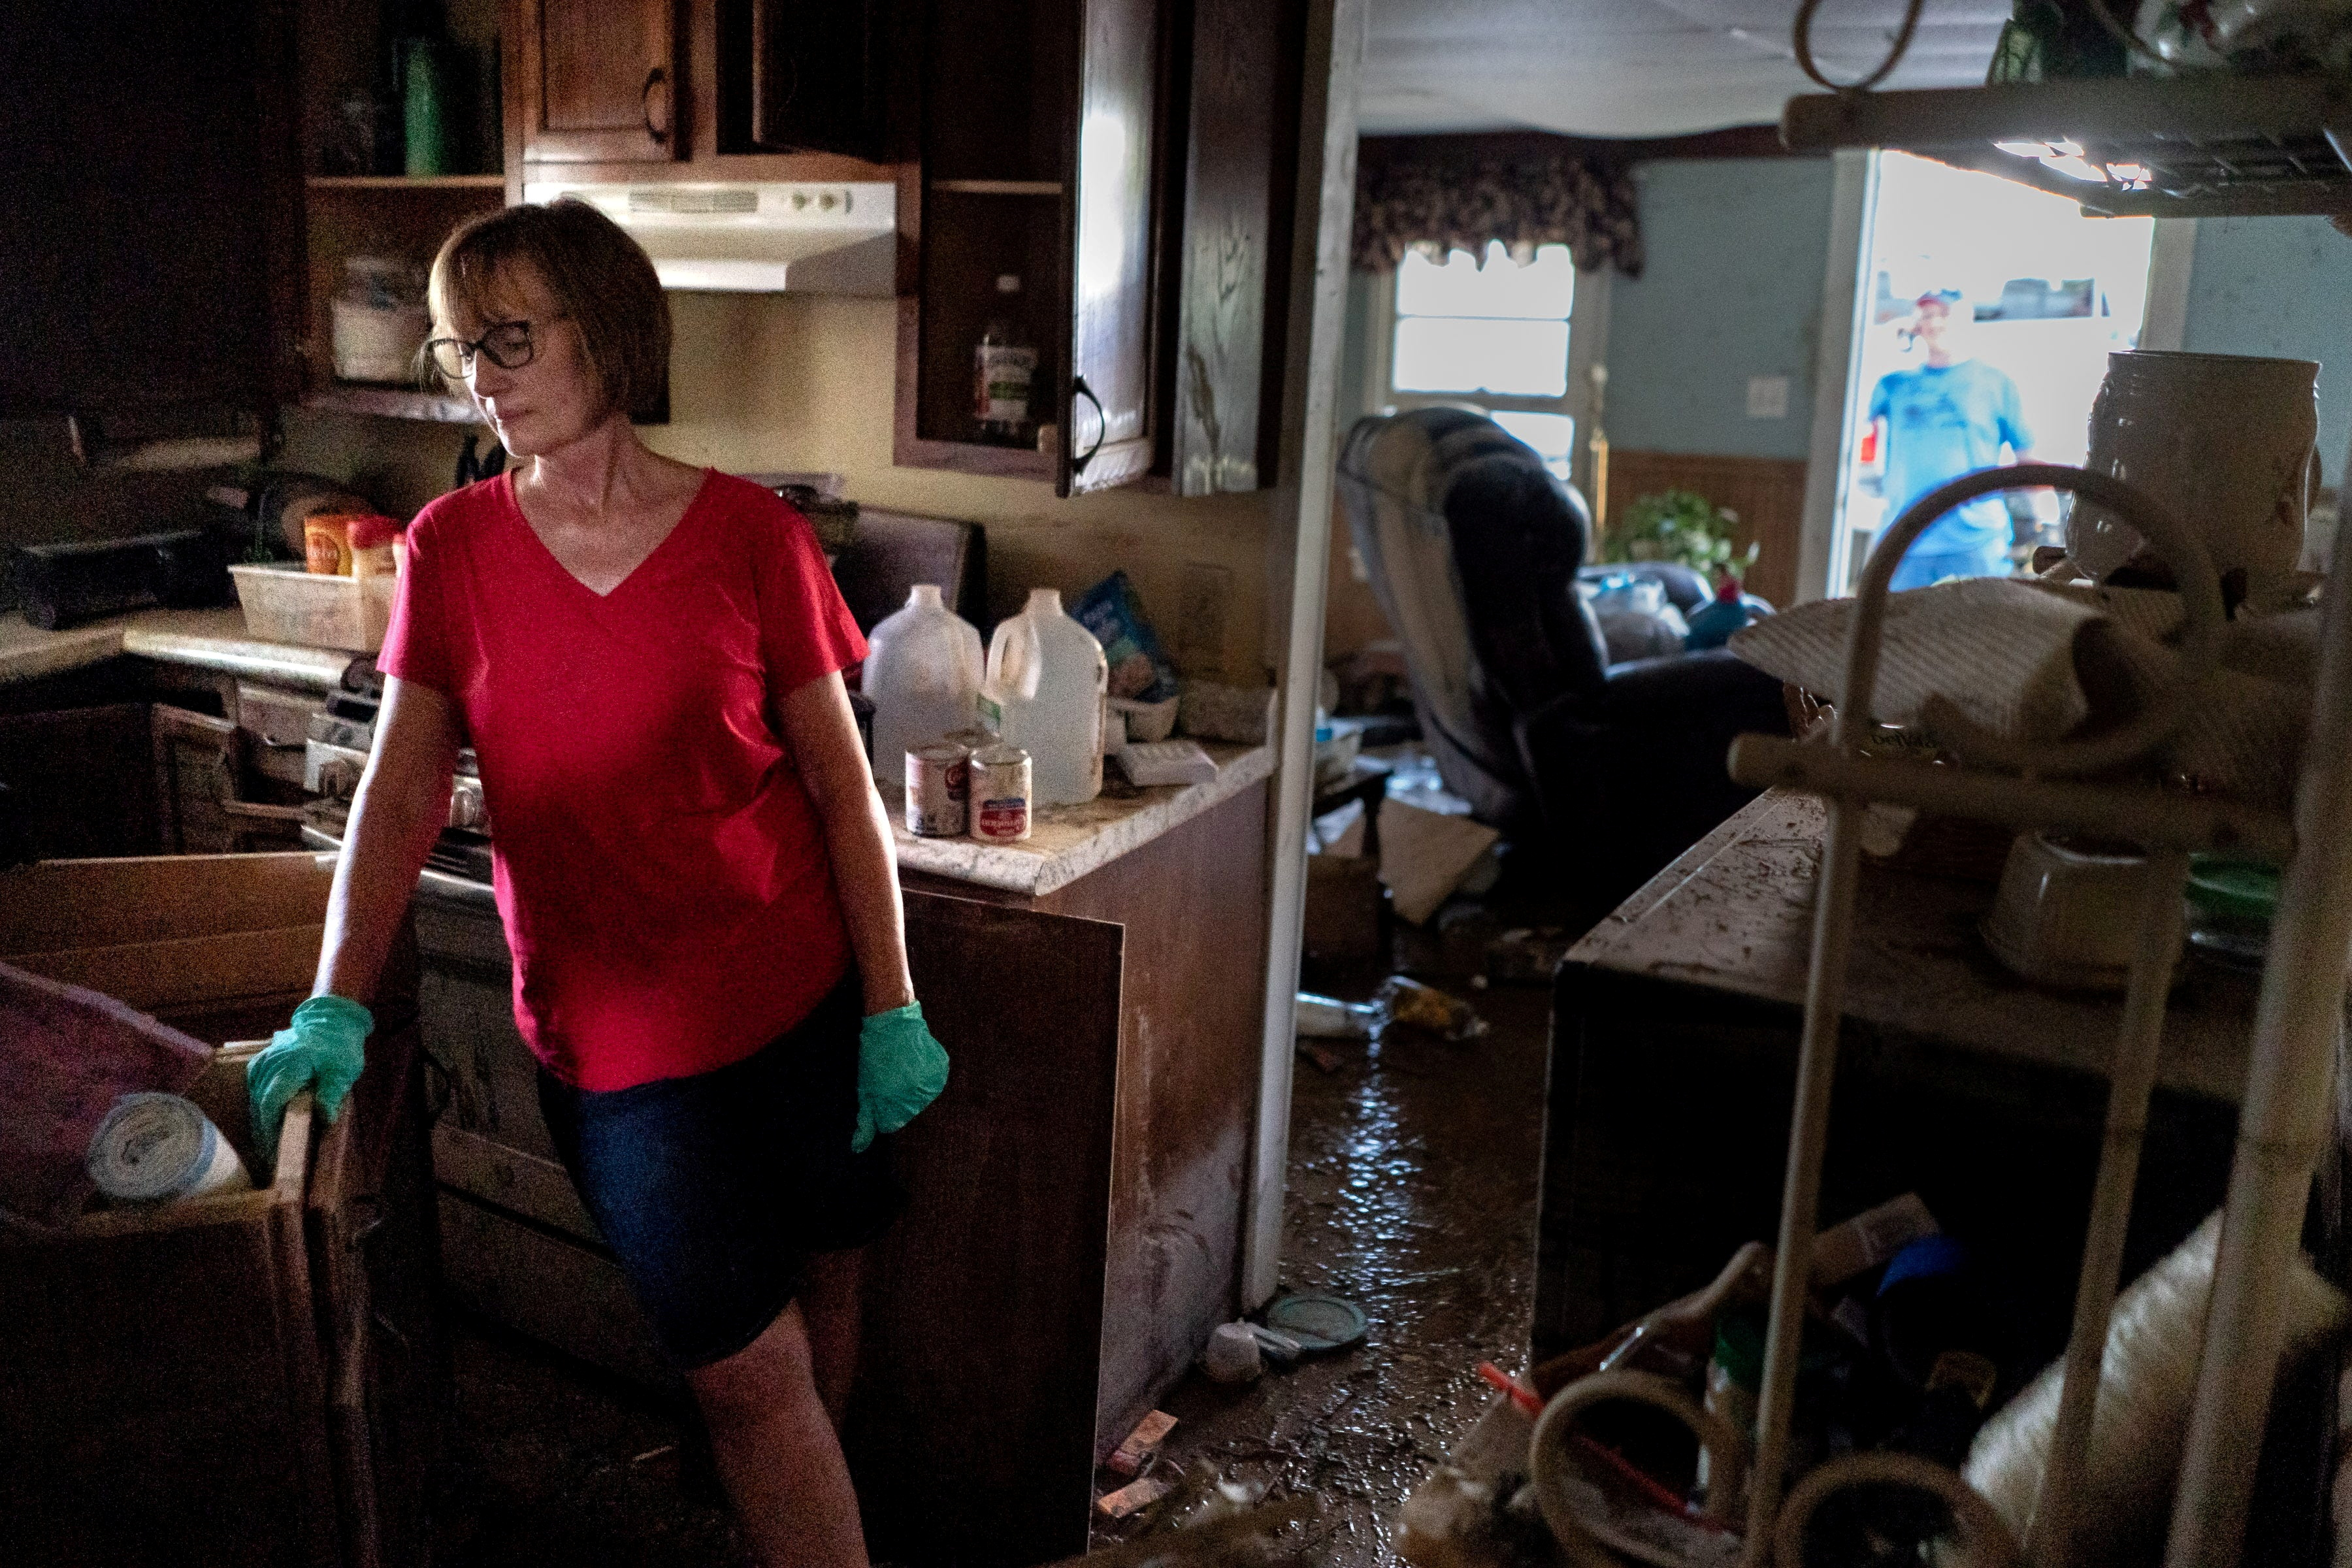 Jaquita Buchanan works on salvaging items from her mother's home after flooding in Waverly, Tennessee, U.S., August 23, 2021. Picture taken August 23, 2021. Her mother escaped from the home safely, but her step-father died while assisting a neighbor. Andrew Nelles/The Tennessean/USA Today via REUTERS